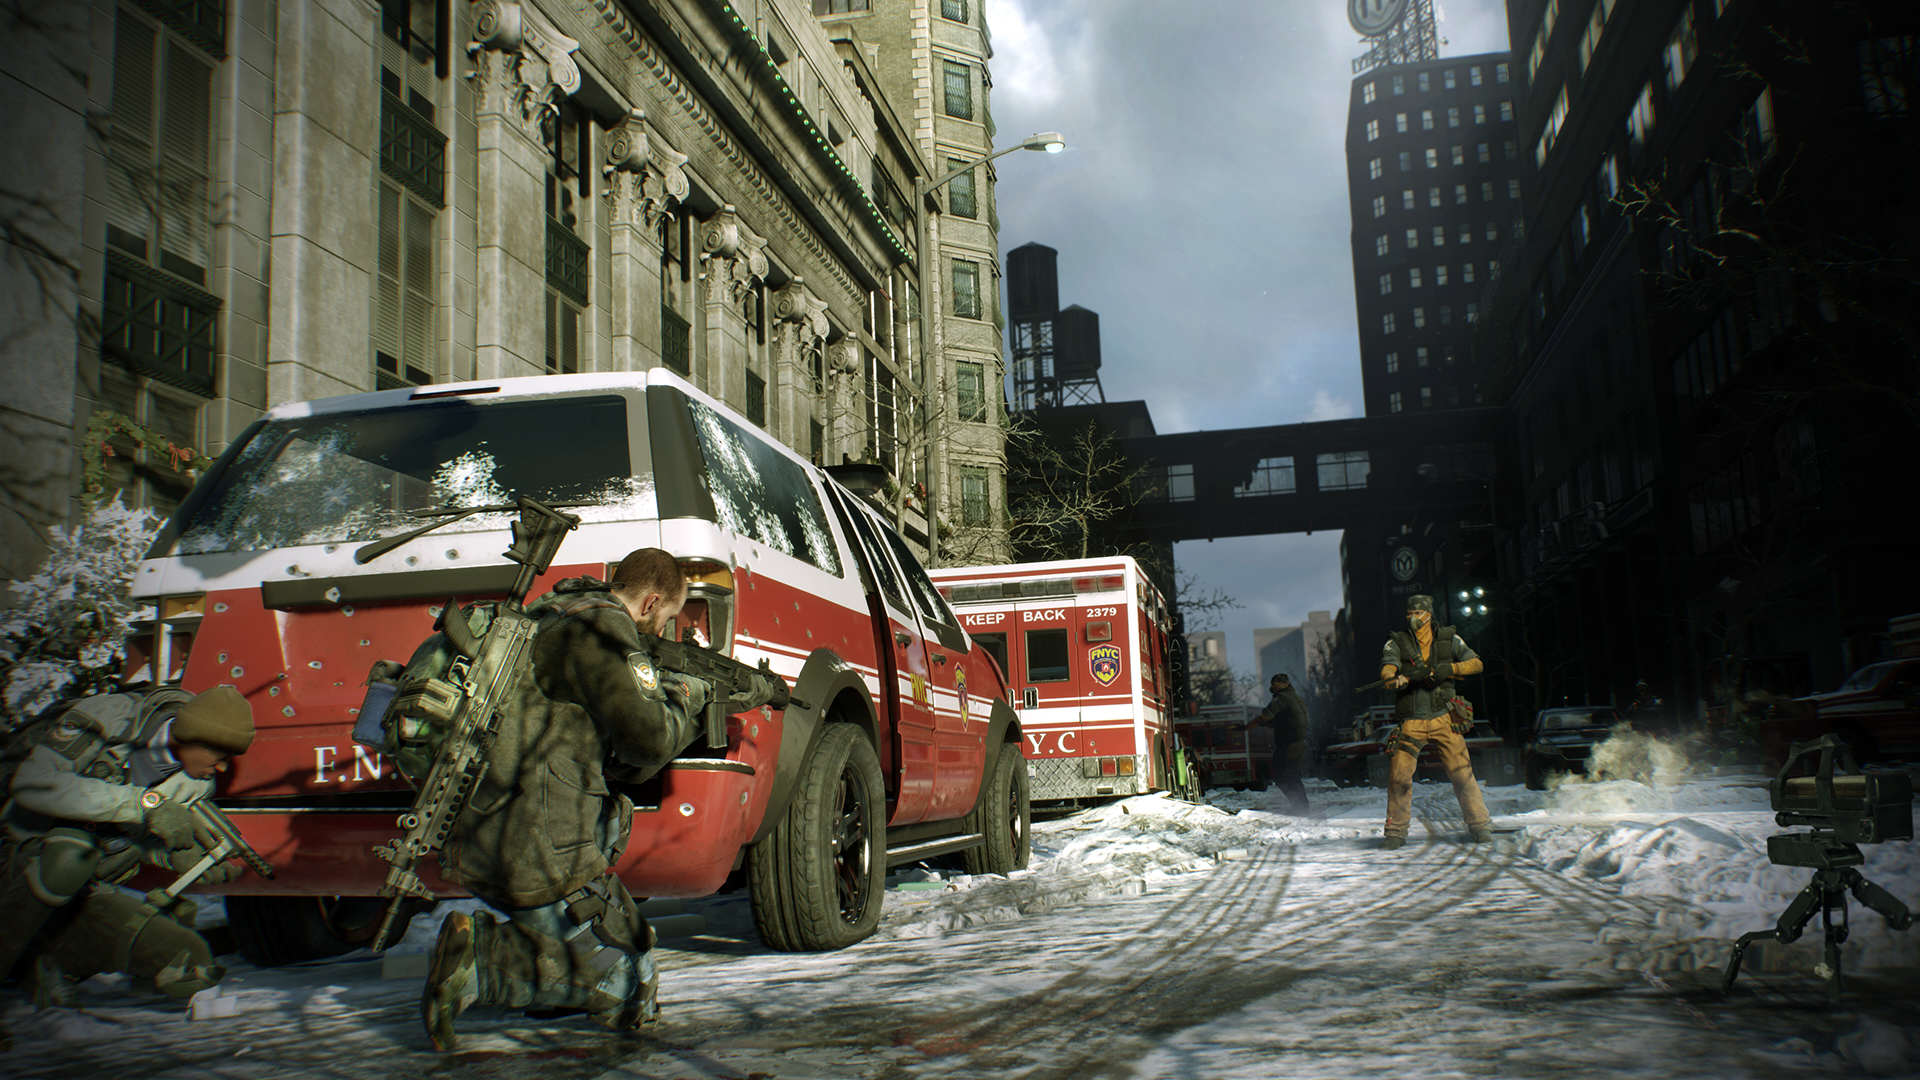 The Division Datamined To Reveal All Kinds Of New Info the division screenshot ign december 2015 encounter